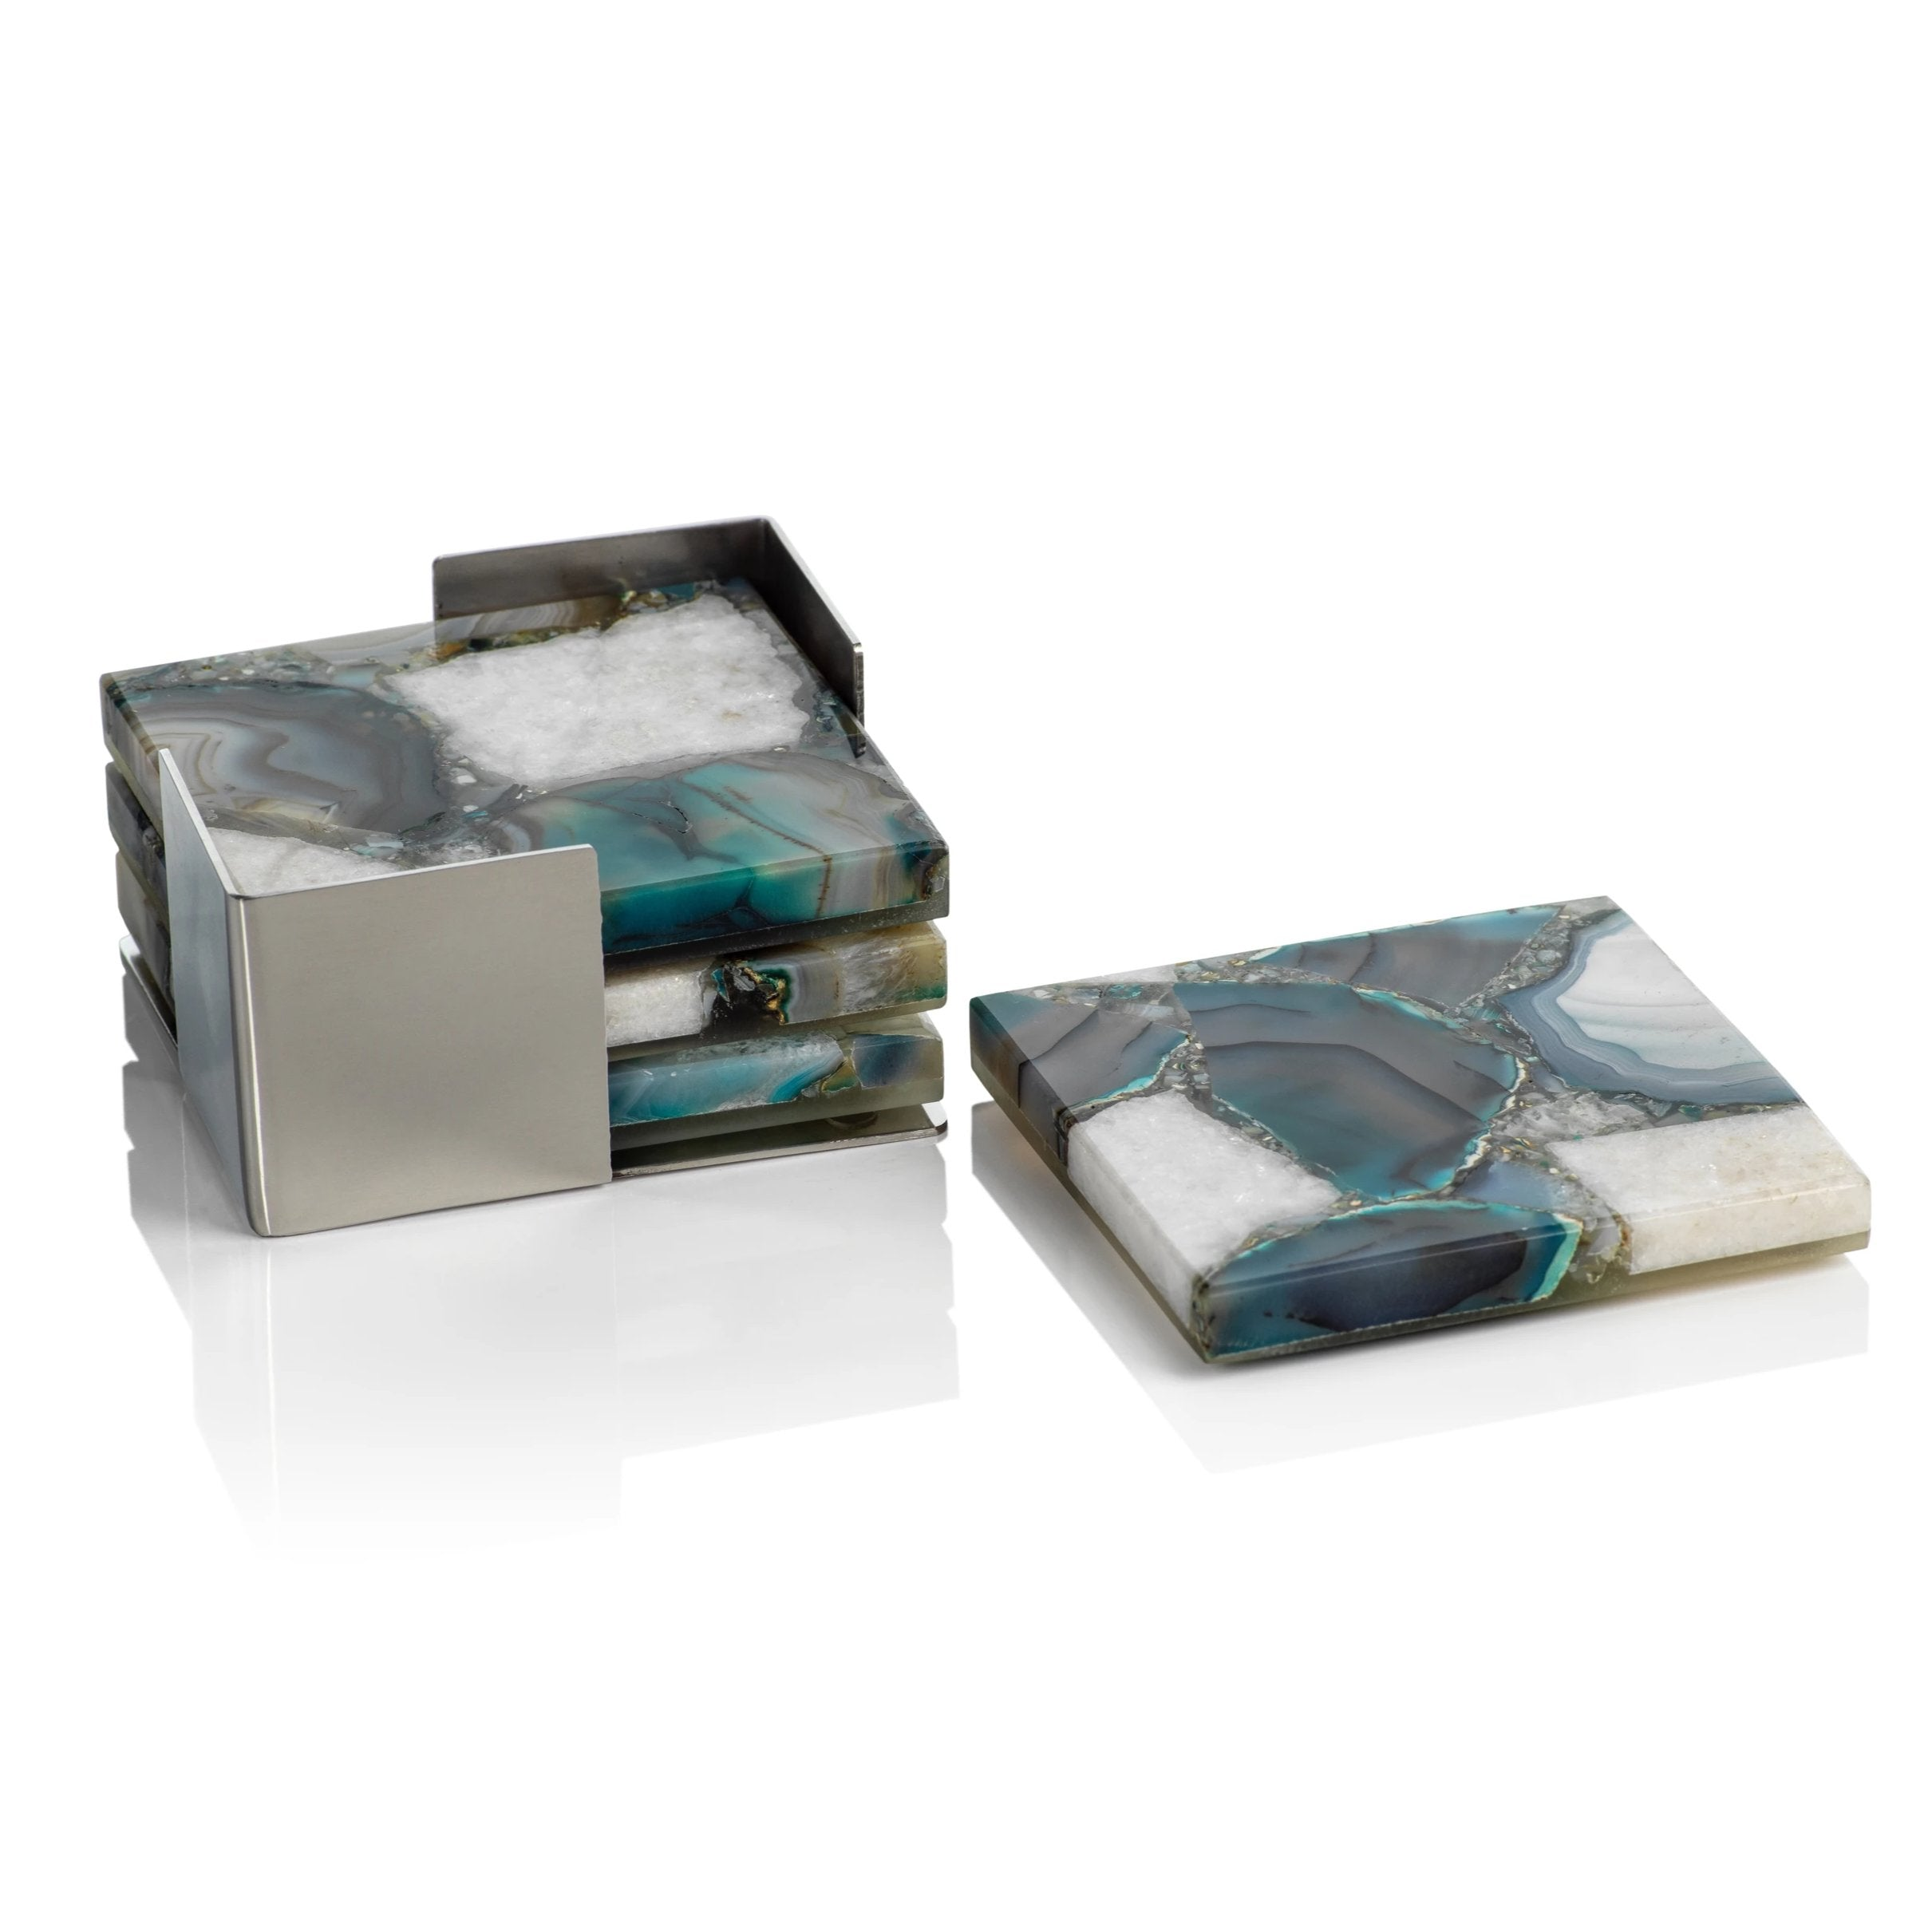 Set/4 Crete Agate Coasters on Metal Tray - Green/White - CARLYLE AVENUE